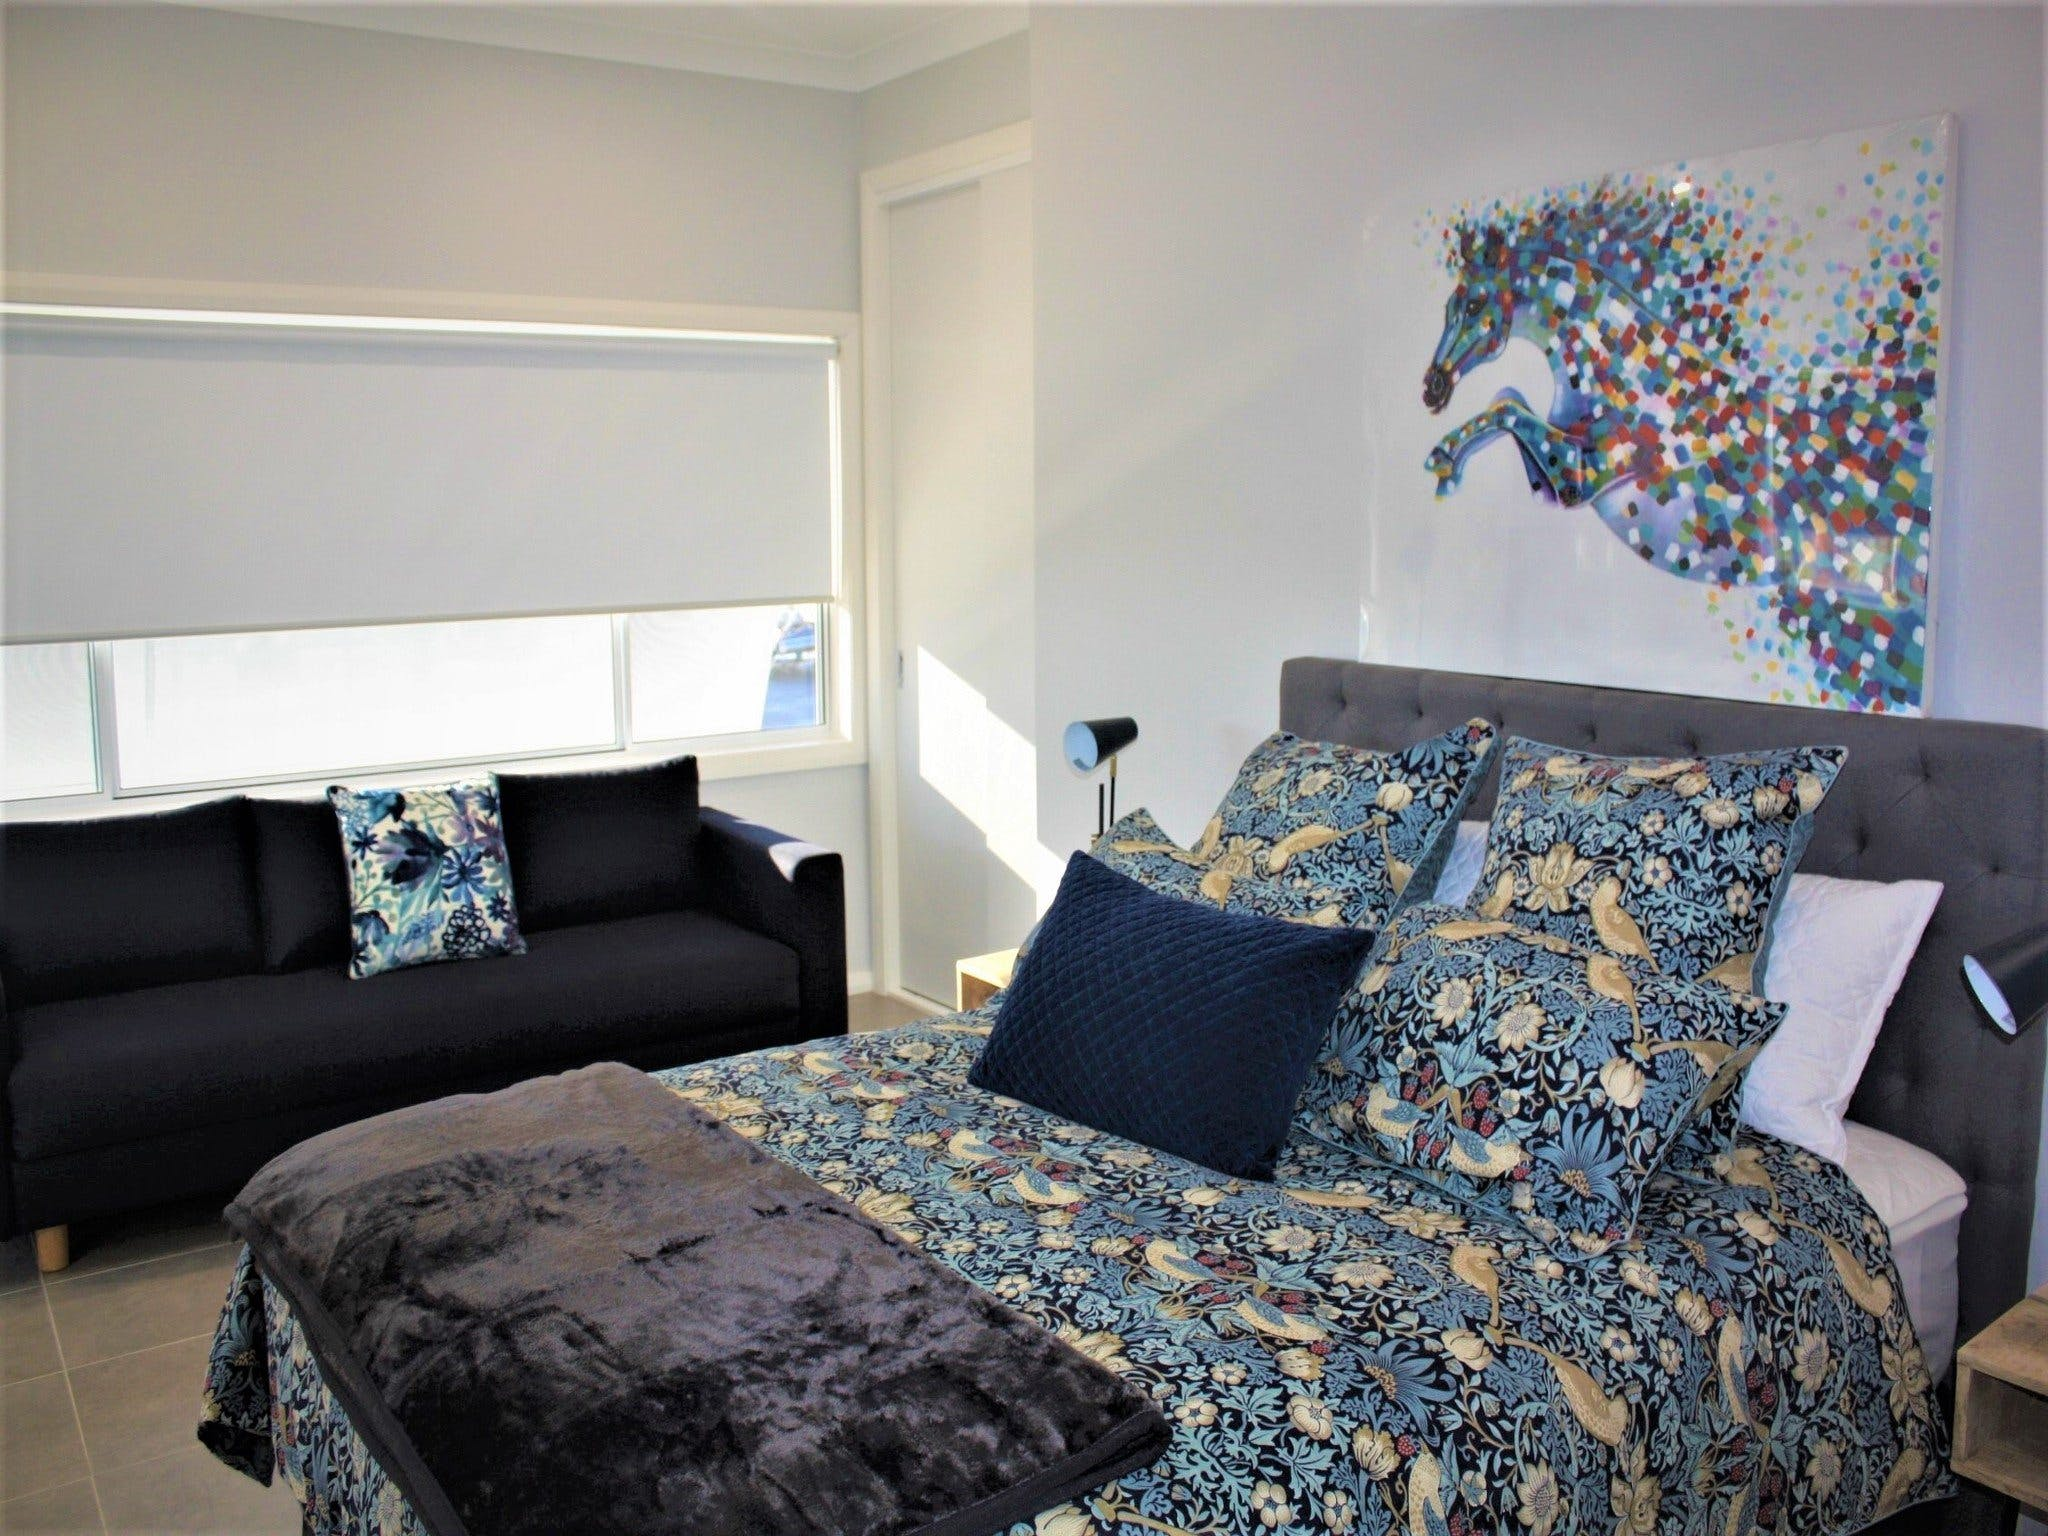 Coolah Shorts - Self Contained Apartments - Accommodation Brisbane